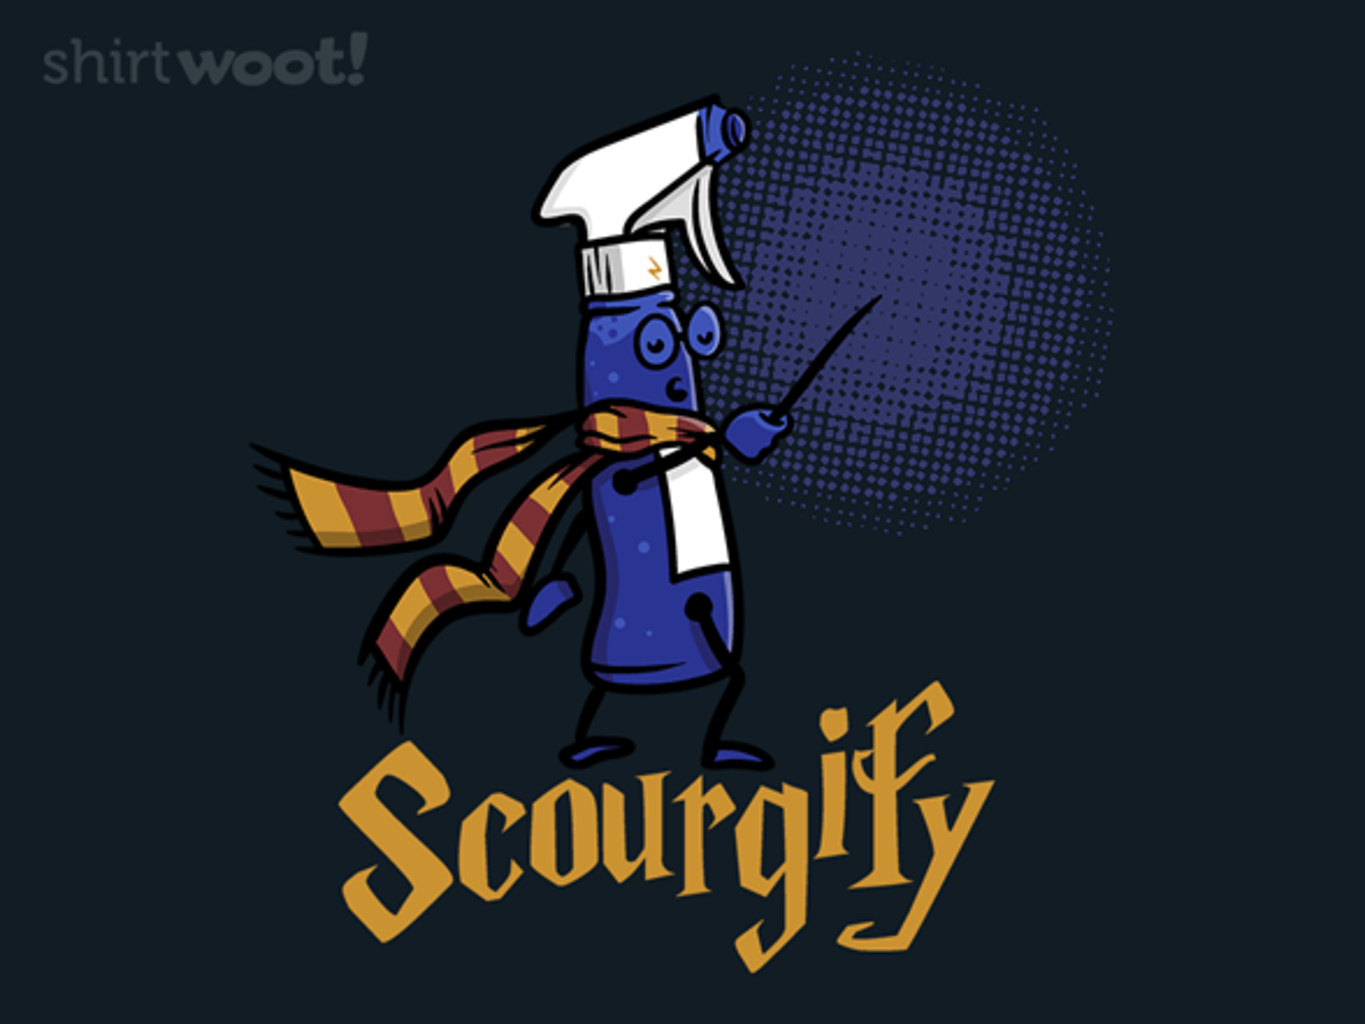 Woot!: Scourgify